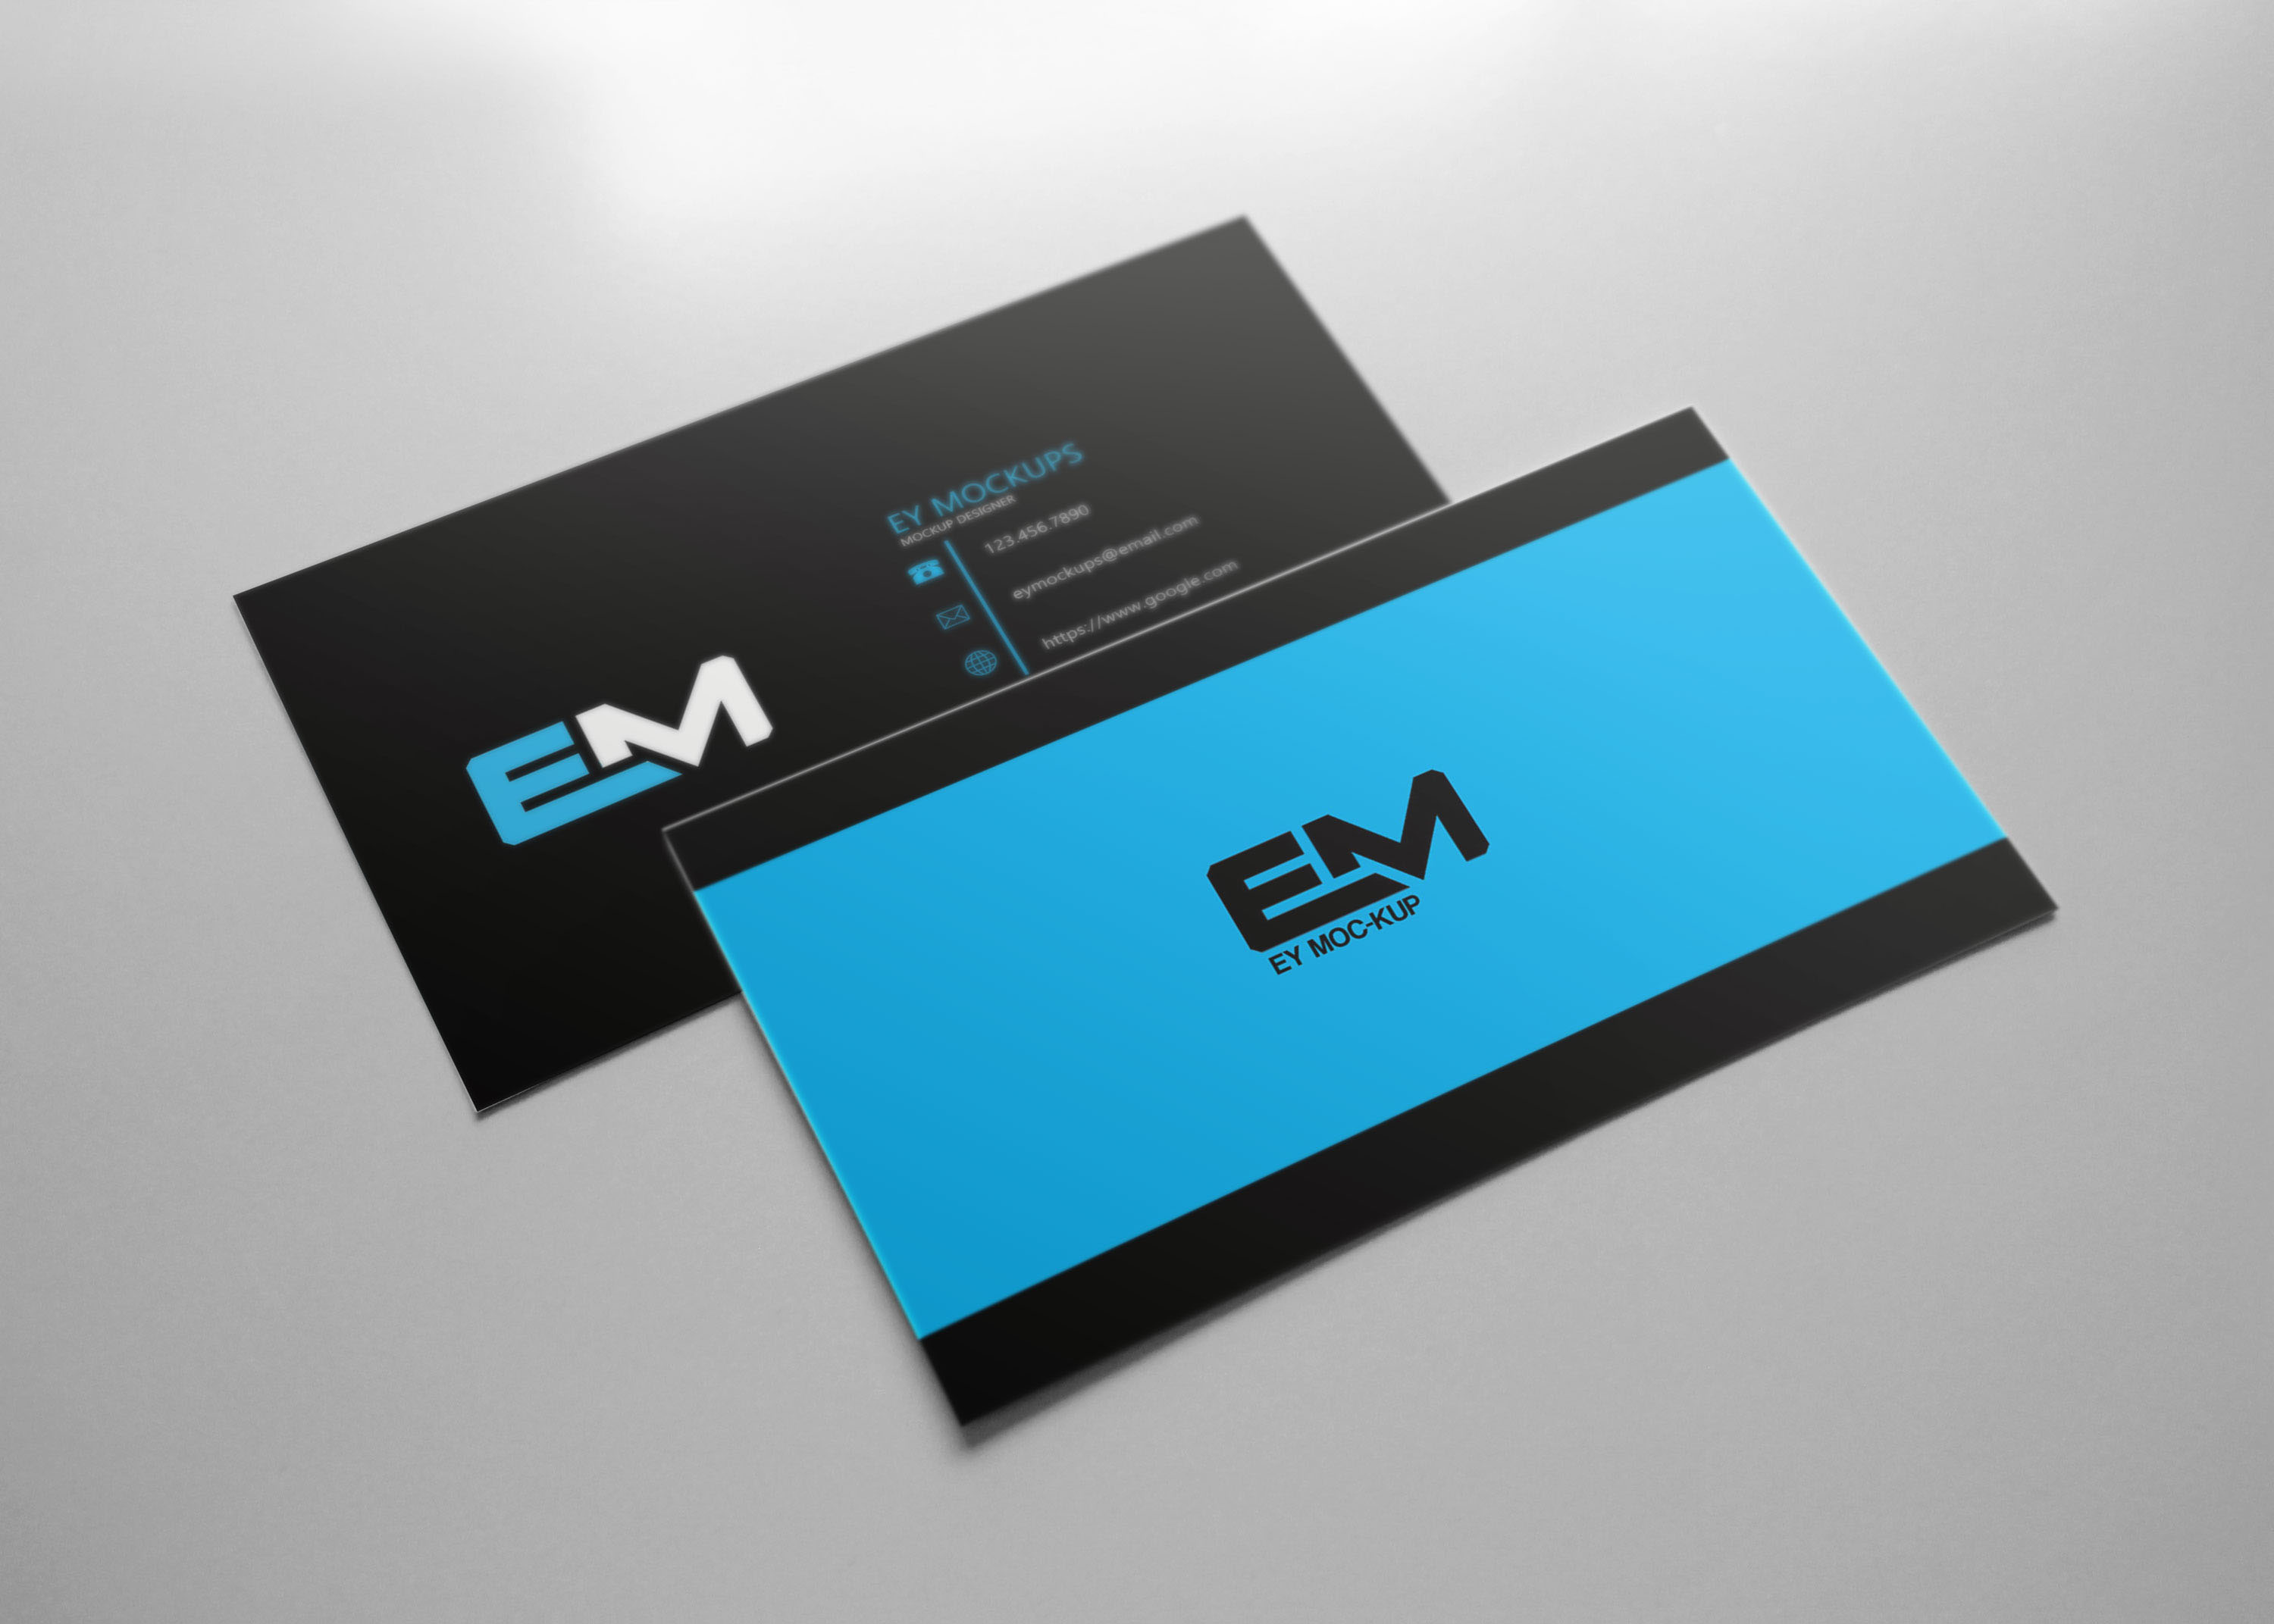 Free Blur Business Card Mockup